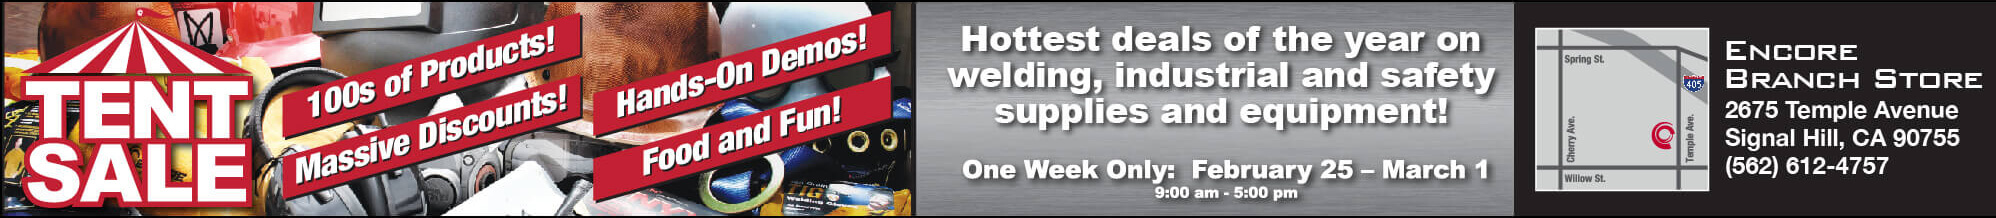 Encore Tent Sale! Hottest Deals of the Year on Welding, Industrial and Safety Supplies and Equipment!